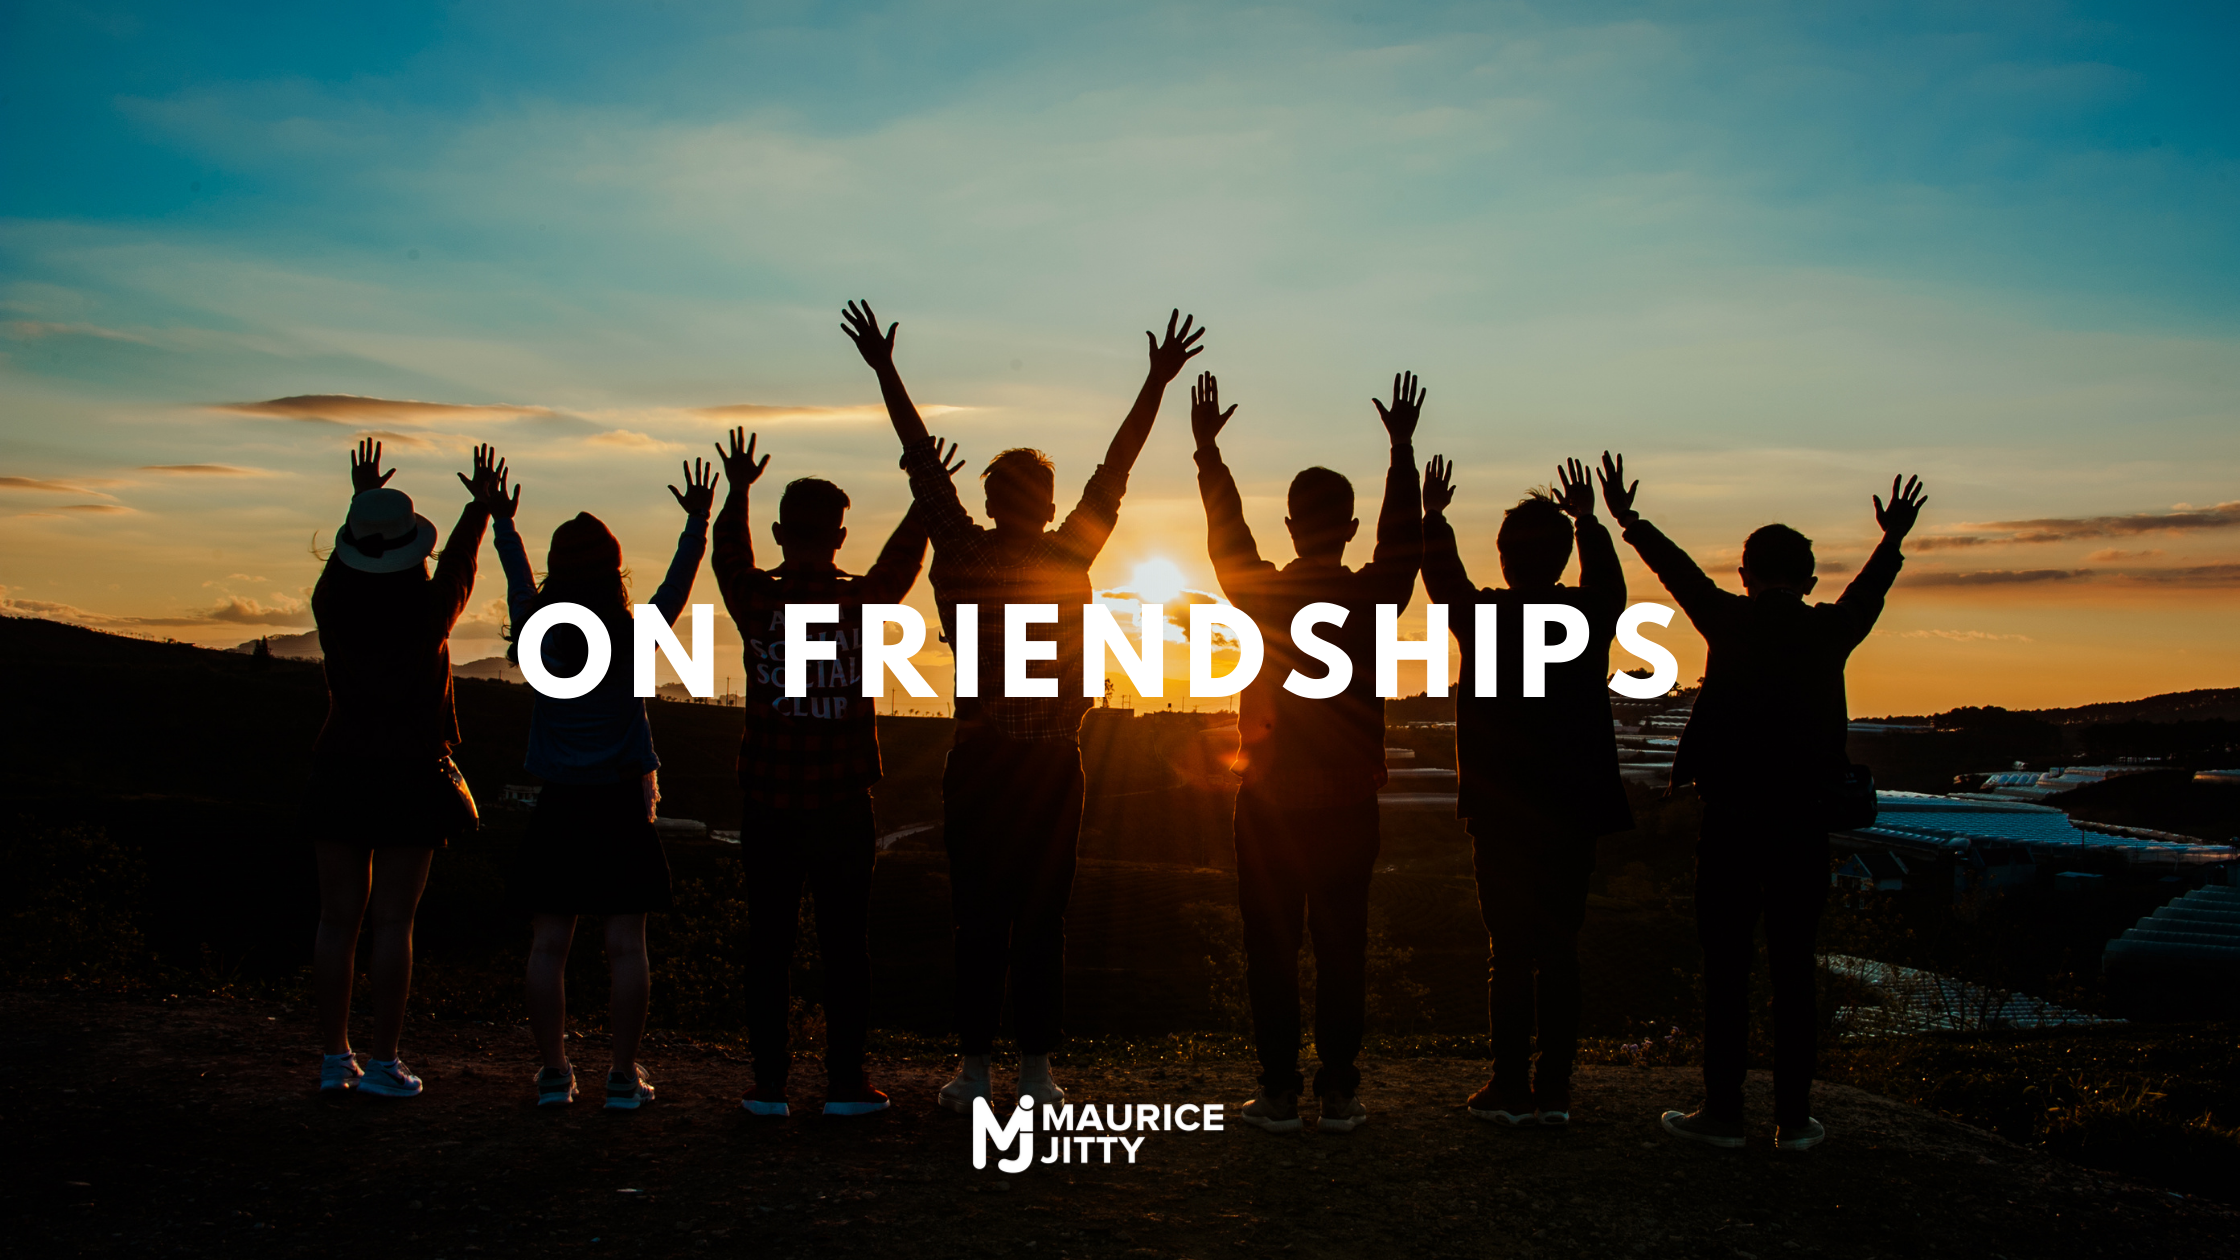 on friendships